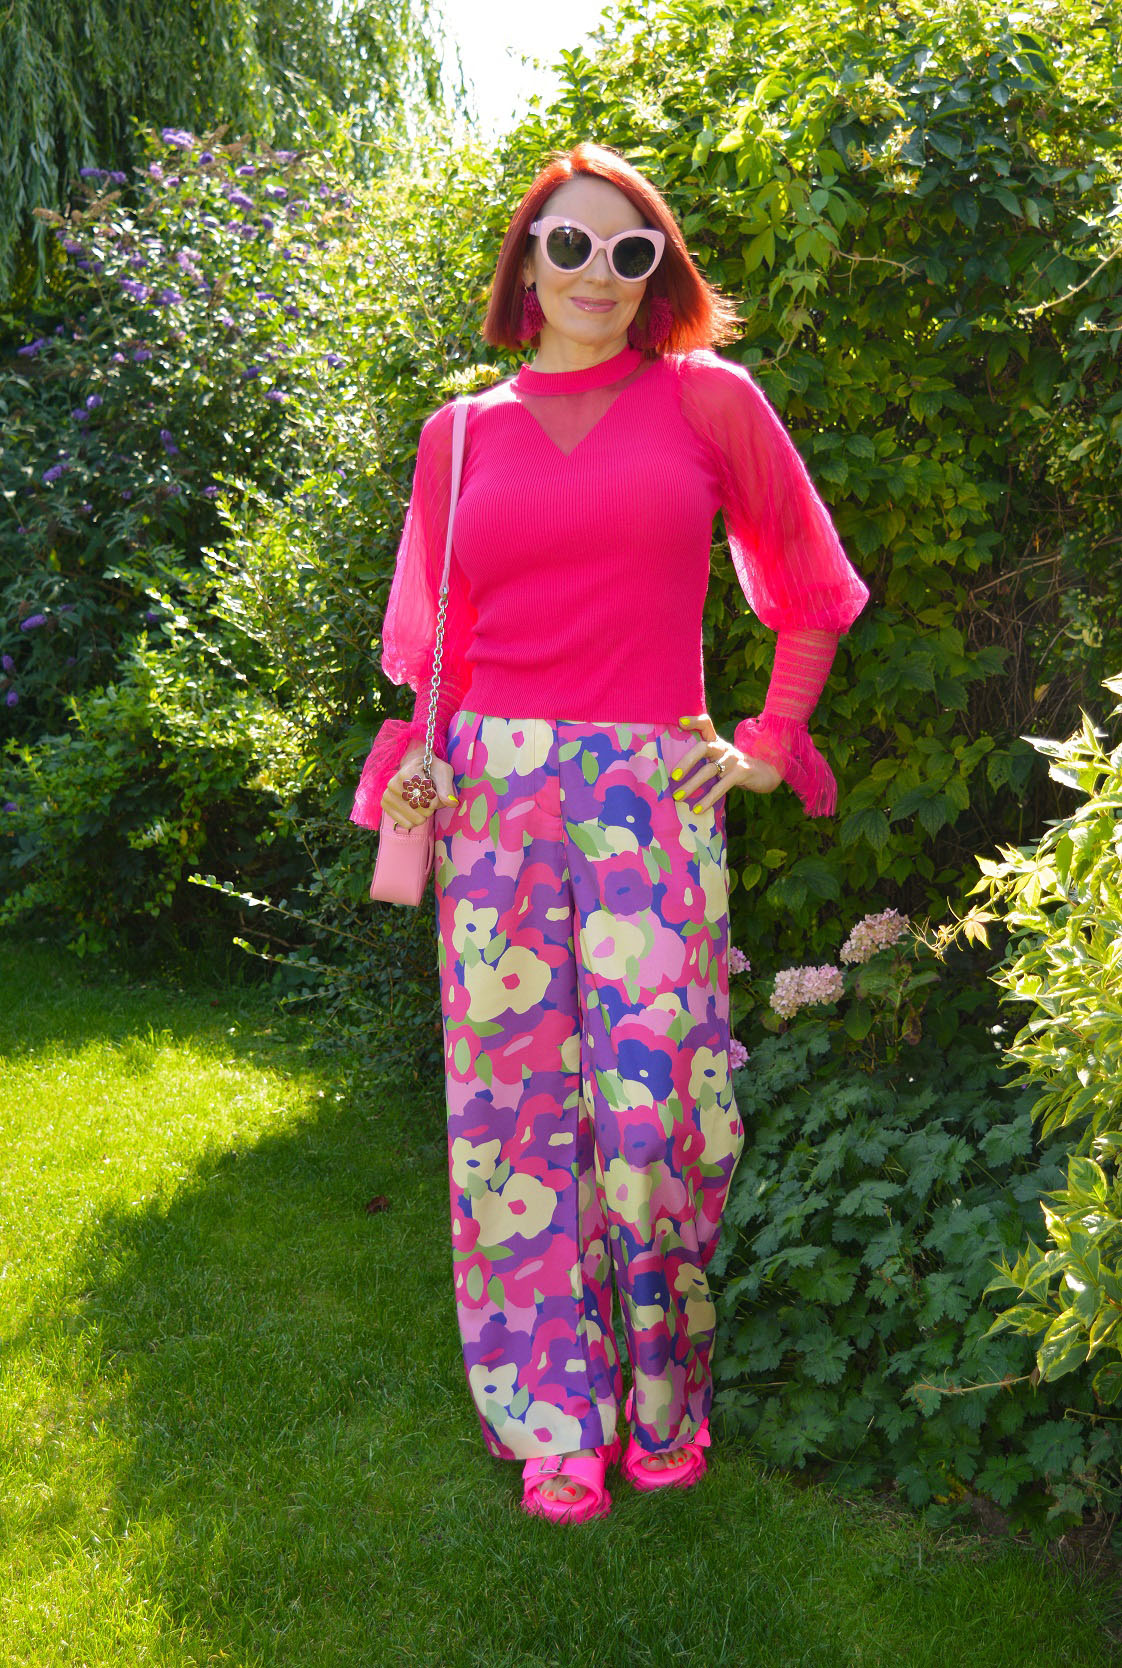 Emma from Stylesplash in neon brights and statement sleeves